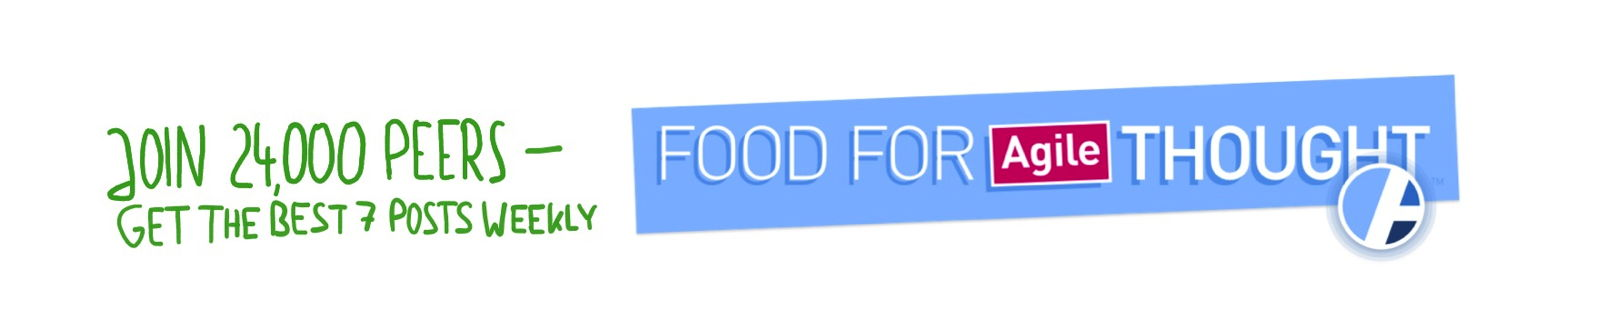 Join 24,000 Agile Peers and Subscribe to the Weekly Food for Agile Newsletter